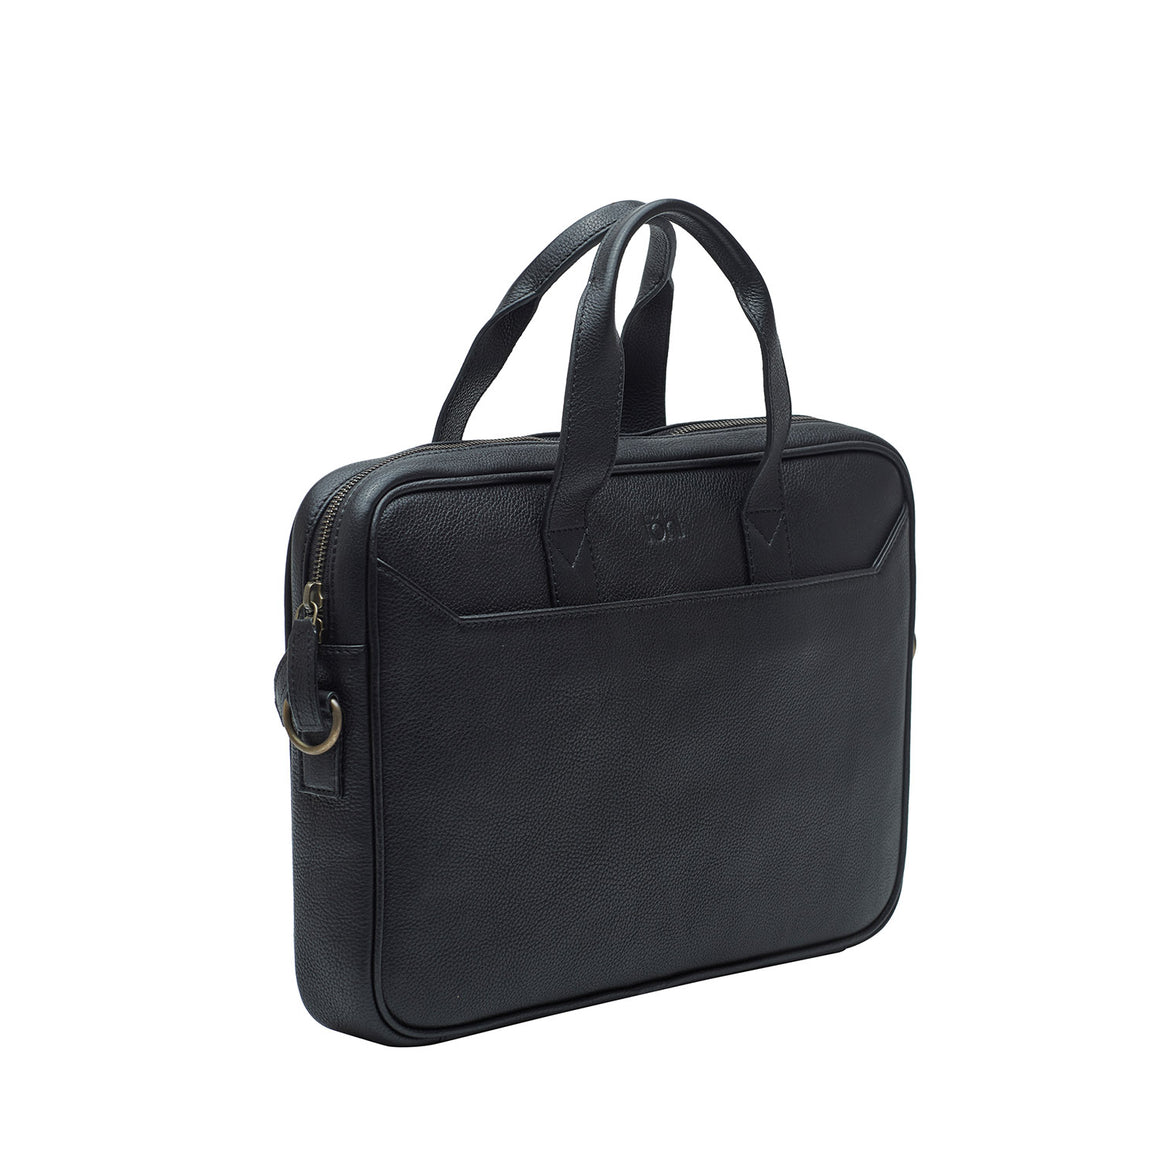 LB 0001 - TOHL VETTORE MEN'S LAPTOP BAG - CHARCOAL BLACK